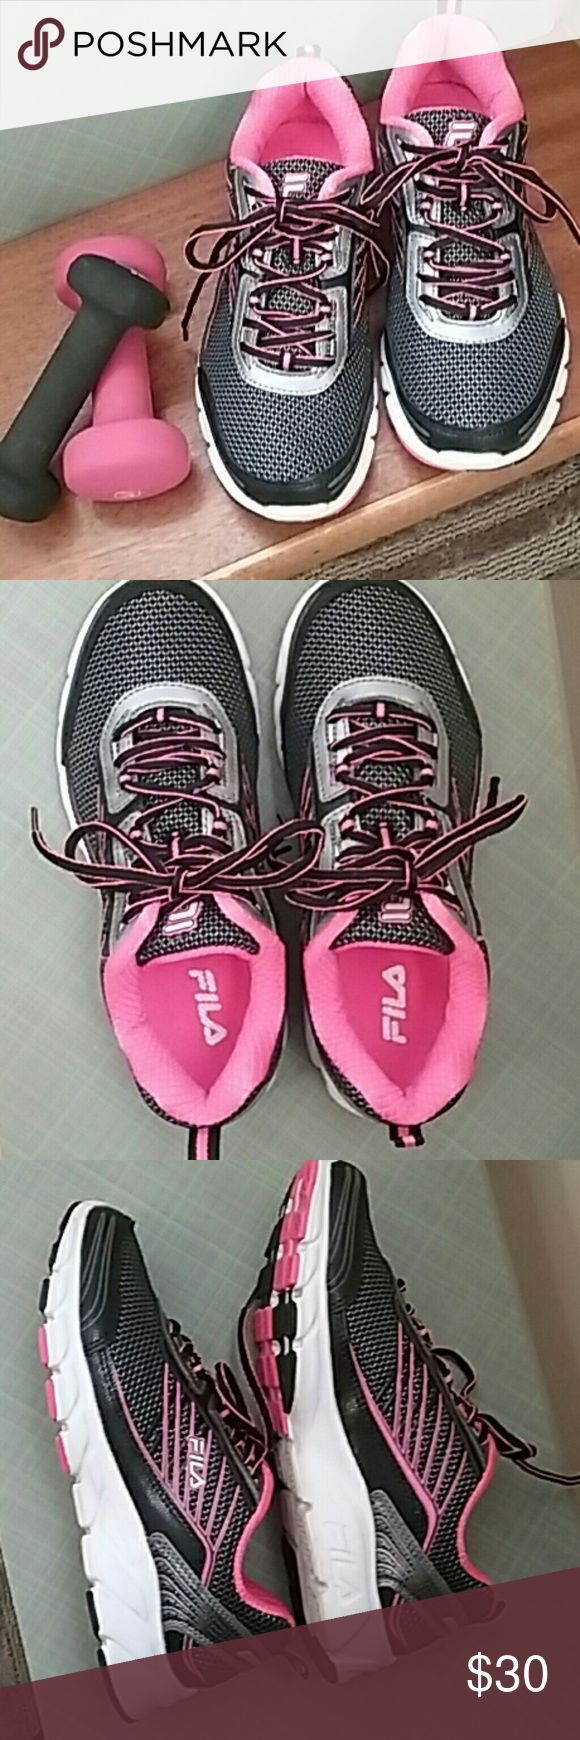 Fila running shoes Comfortable and stylish Fila running shoes Breathable mesh  Upper leather/synthetic /textile  Ladies size 8 Black, bright pink, and a touch of silver  Worn twice just for walking In nearly new condition  Only selling them because... I admit, I have too many shoes!!!!! Fila Shoes Sneakers